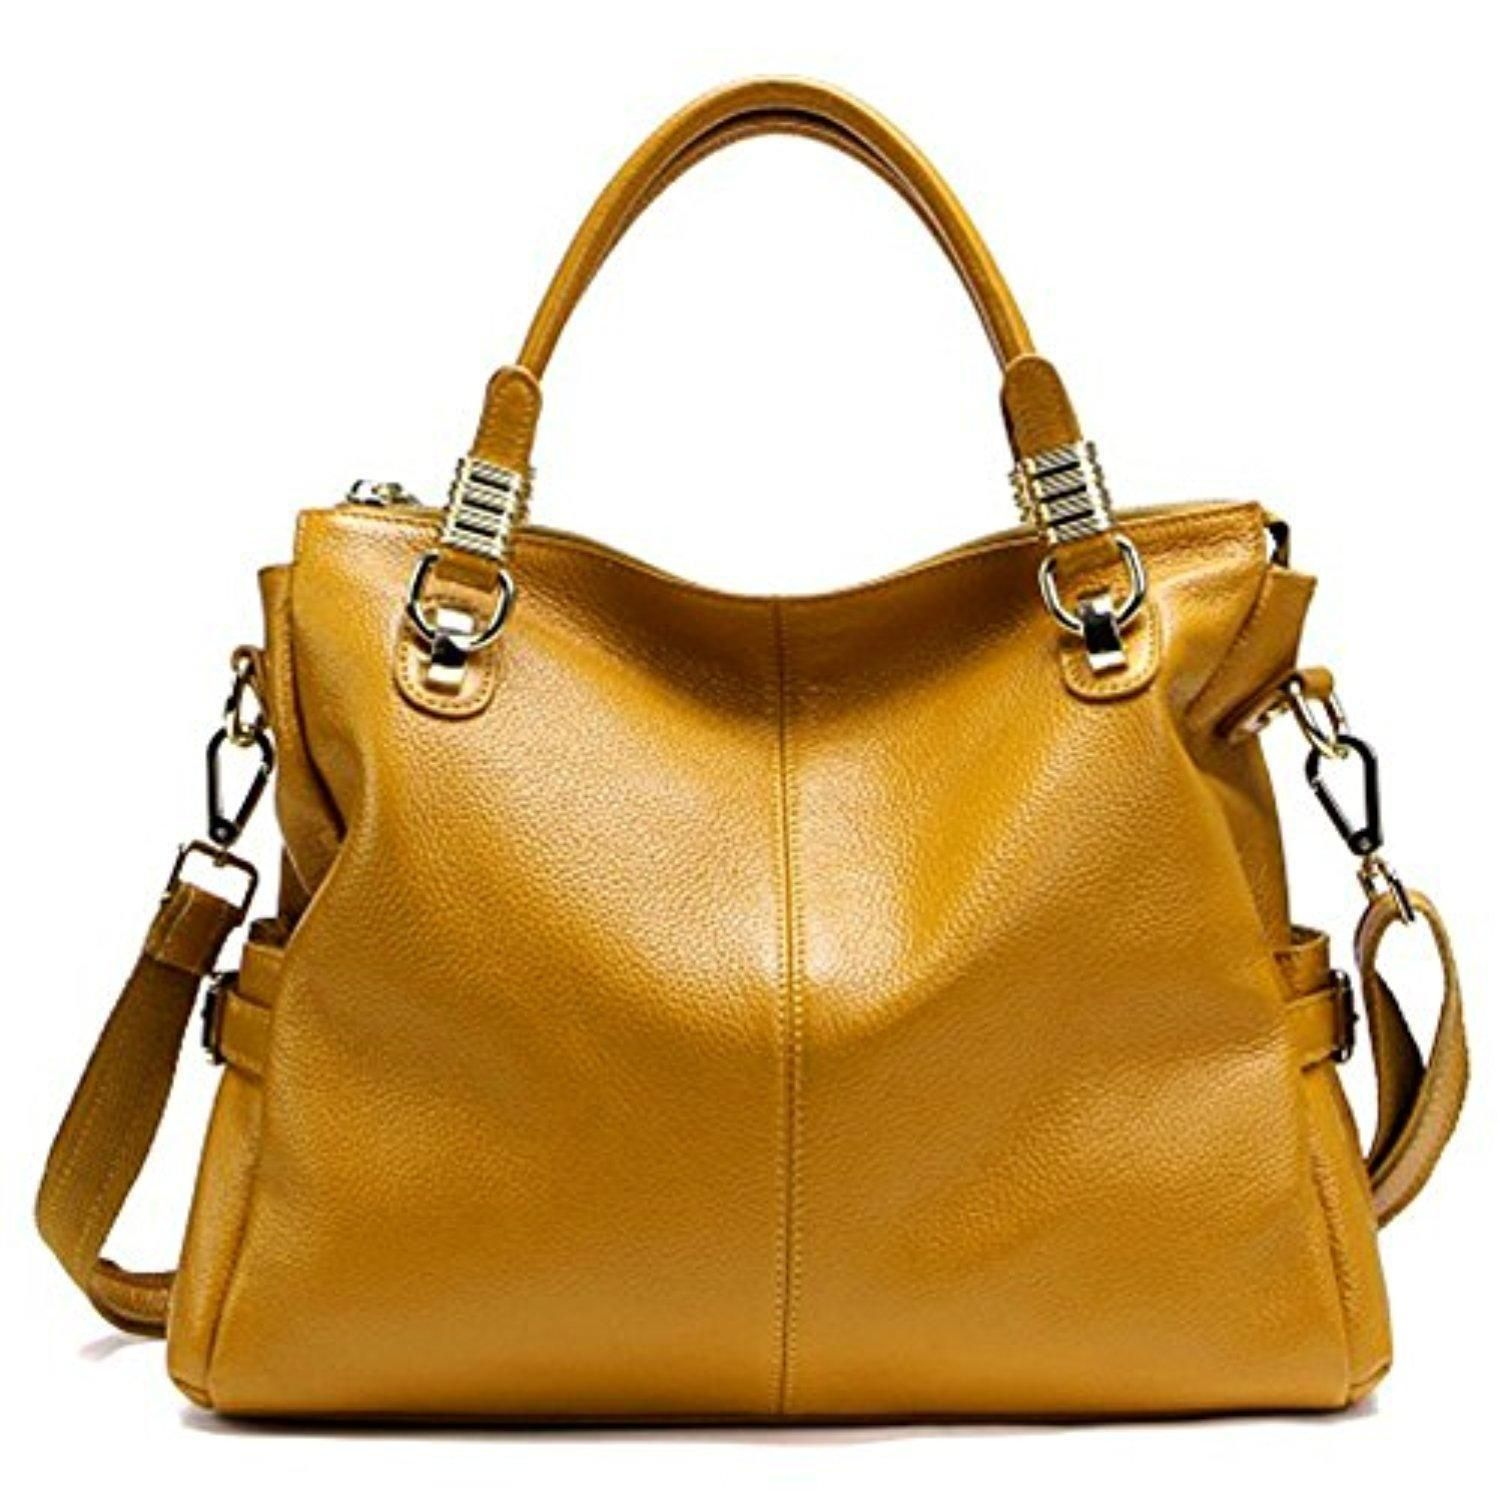 Fablight Women s Genuine Leather Large Top-Handle Shoulder Bag Cross Body  Tote Hobo Handbag - Brought to you by Avarsha.com c10b0f1502